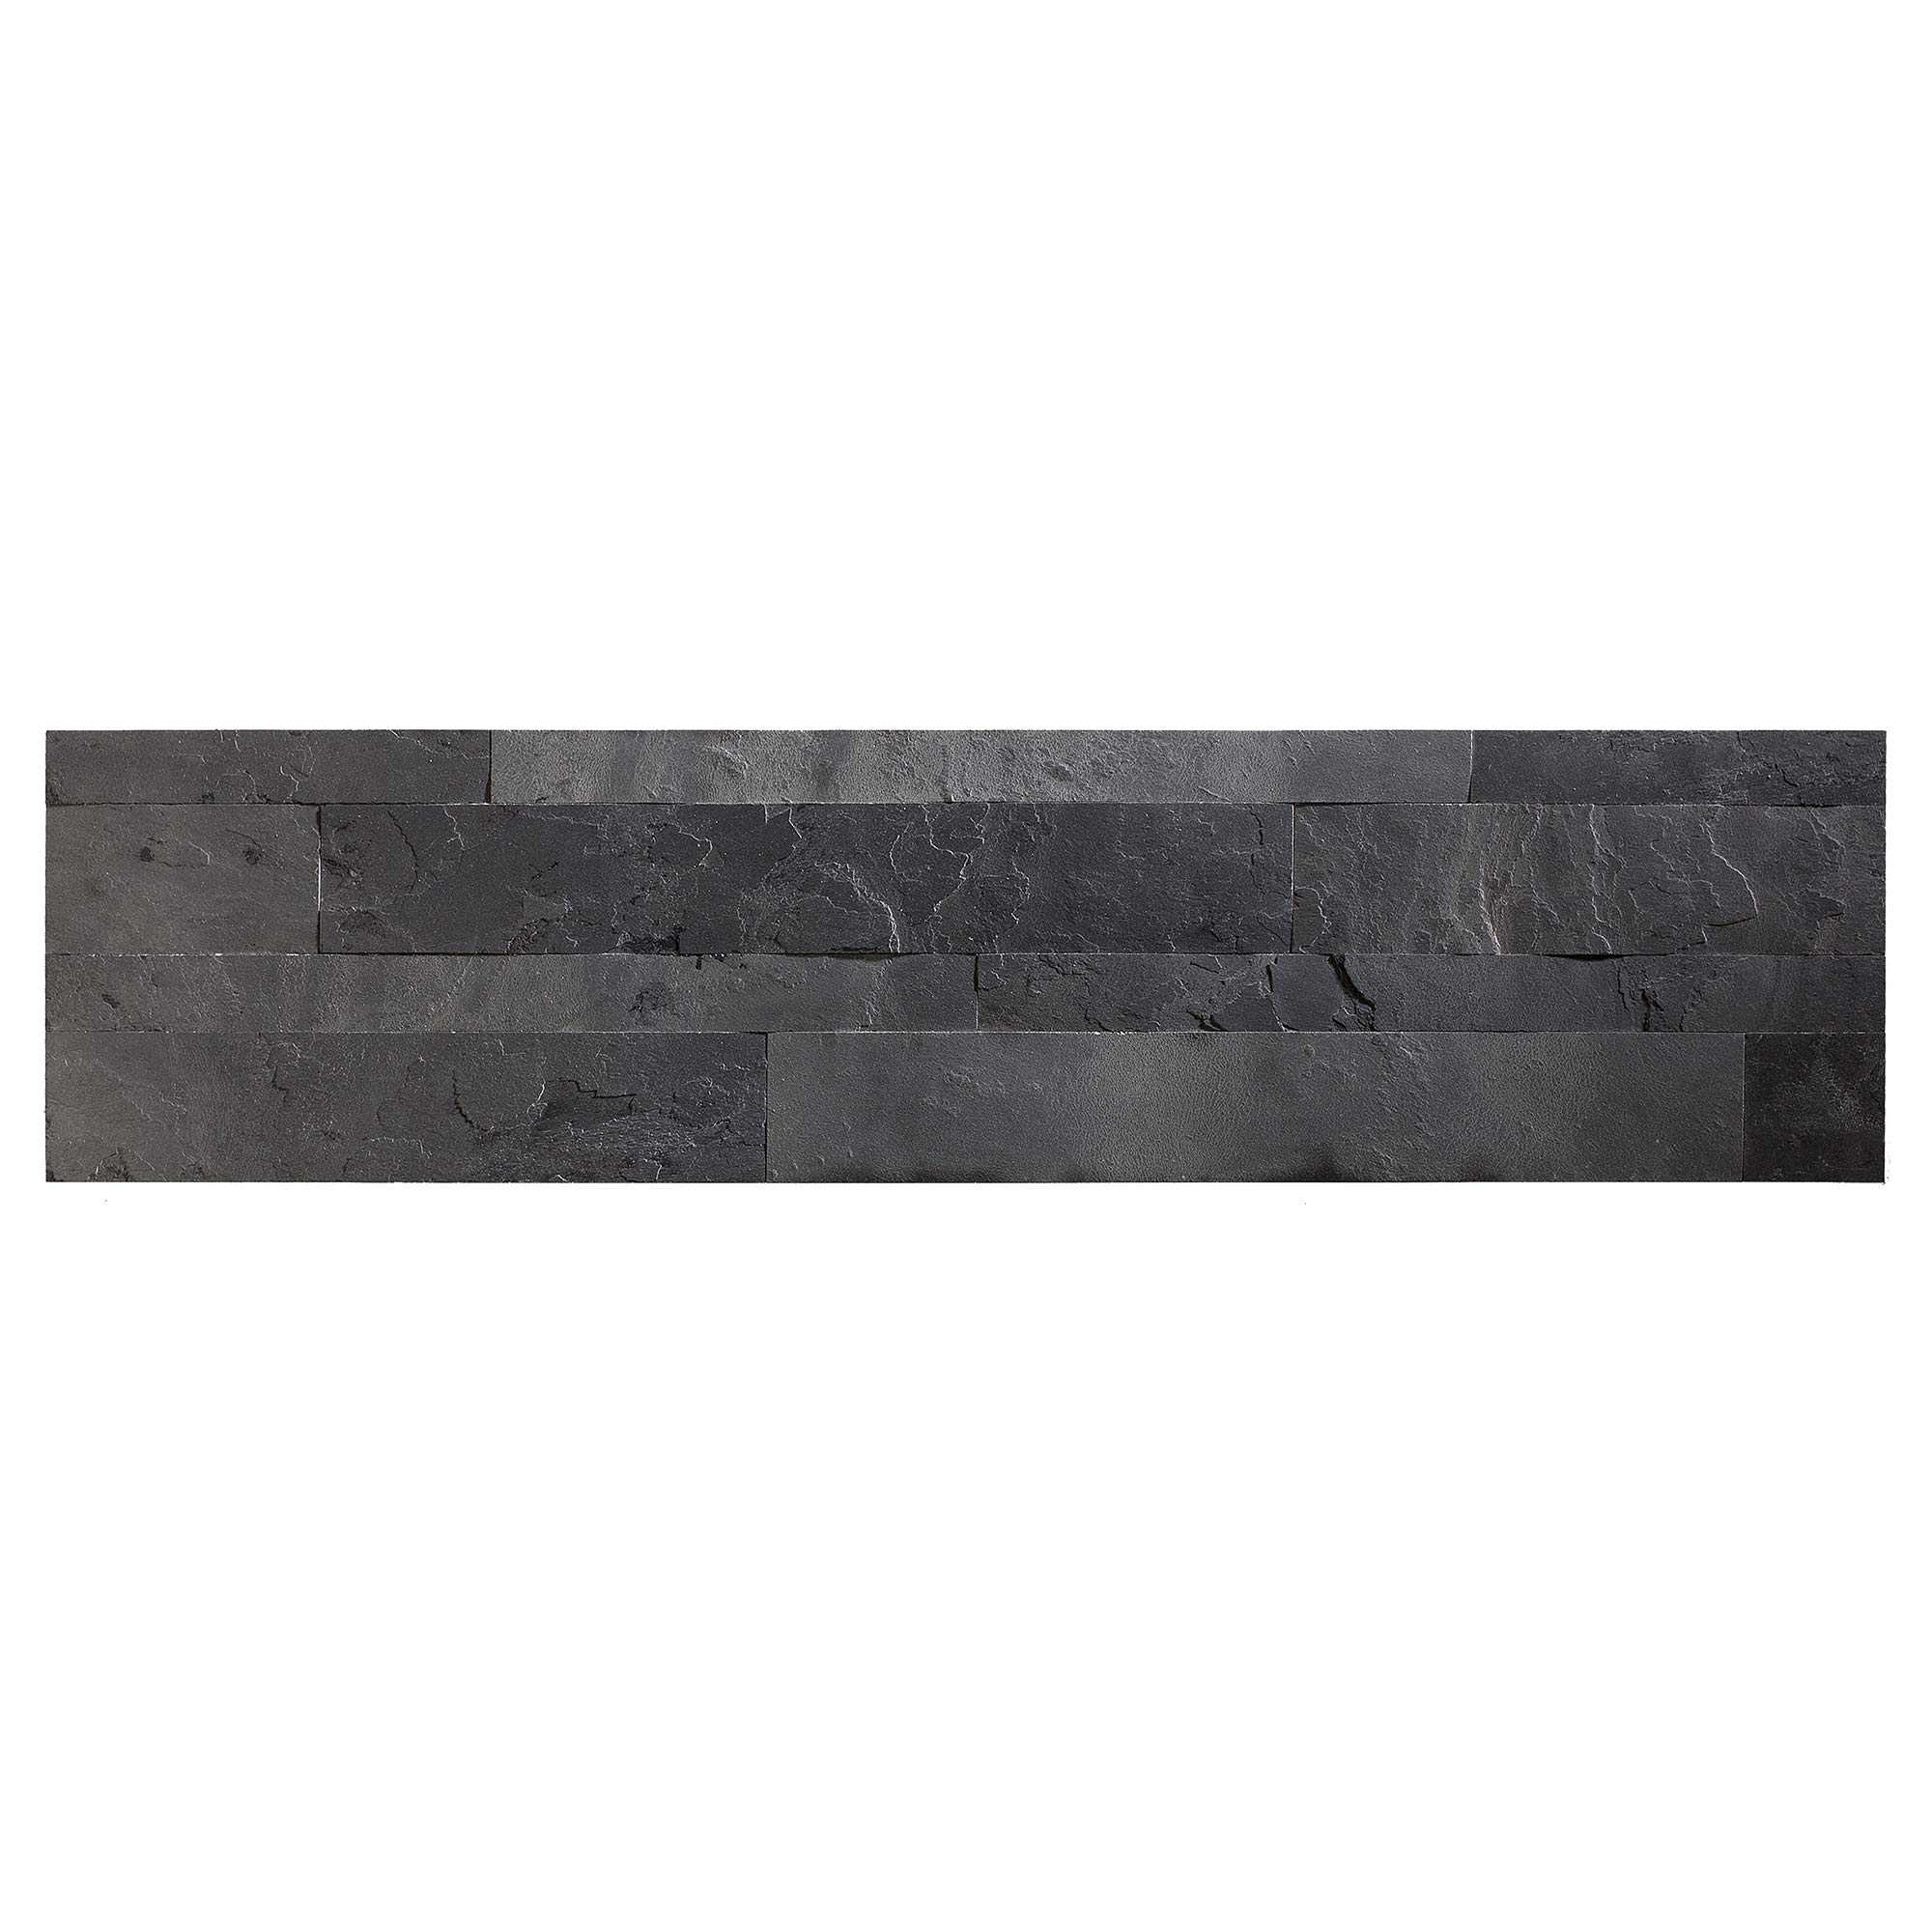 Aspect Peel and Stick Stone Overlay Kitchen Backsplash - Charcoal Slate (5.9'' x 23.6'' x 1/8'' Panel - Approx. 1 sq ft) - Easy DIY Tile Backsplash by Aspect